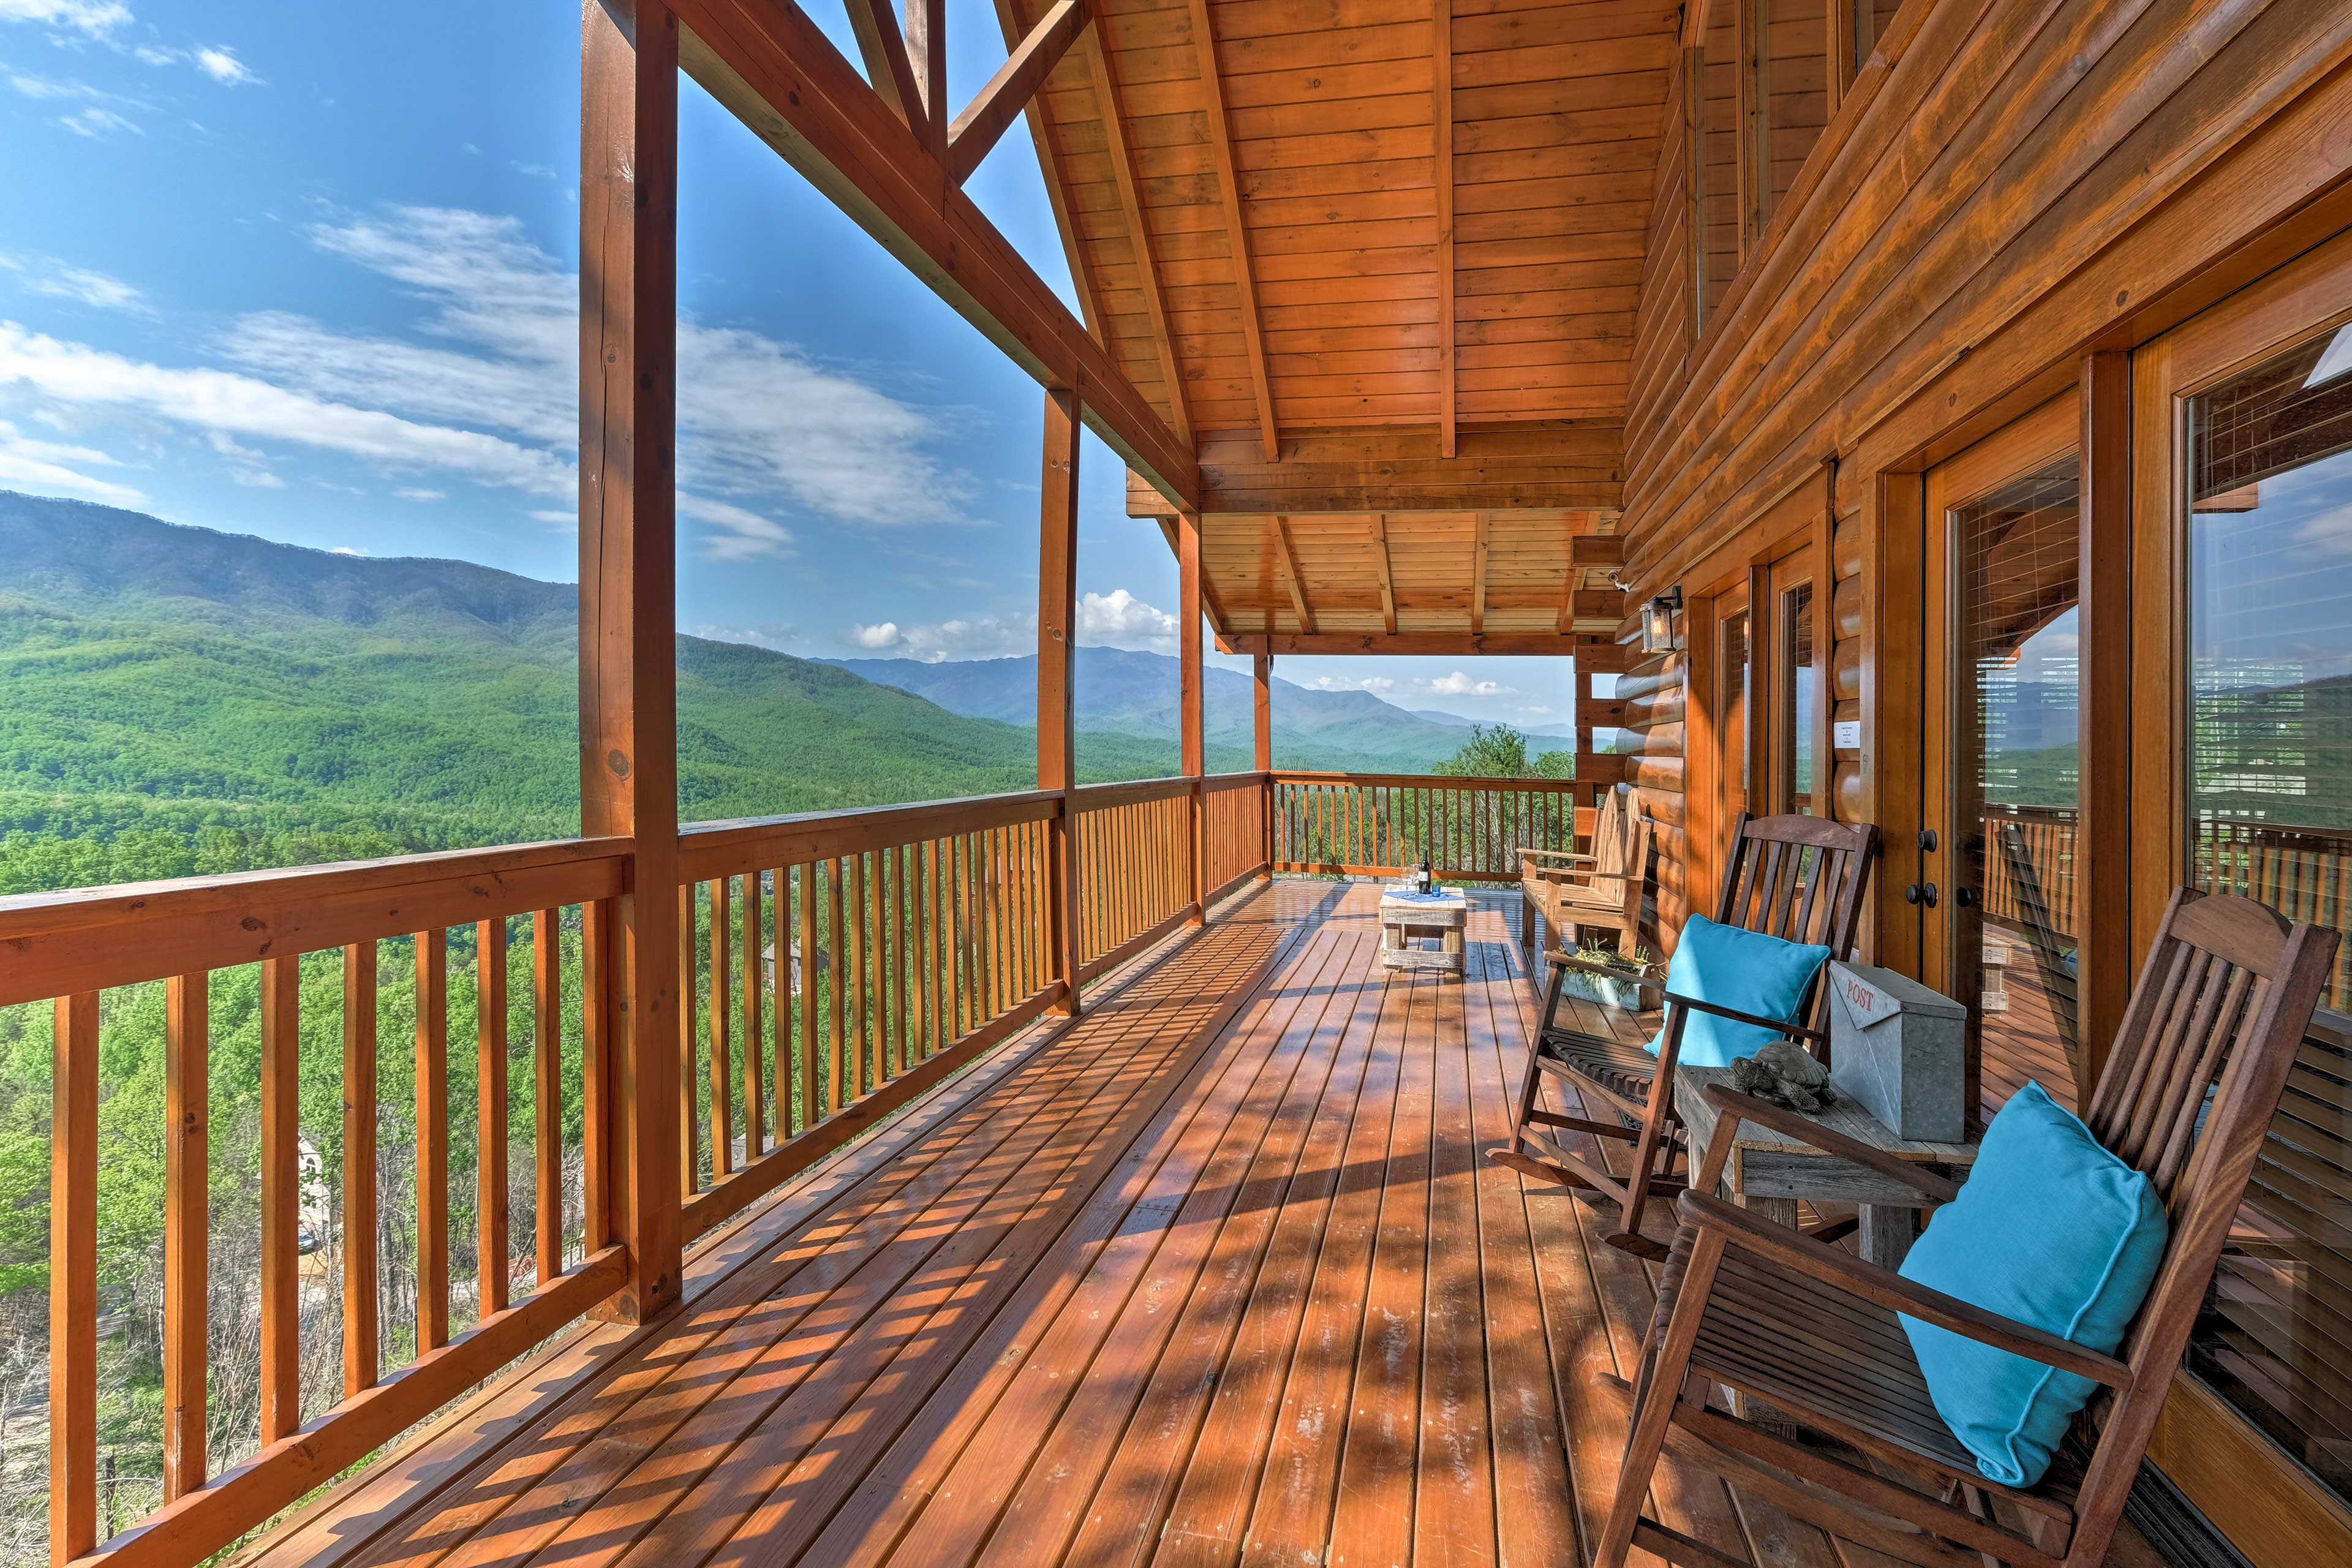 There's no better place to spend your mornings than out on the deck!